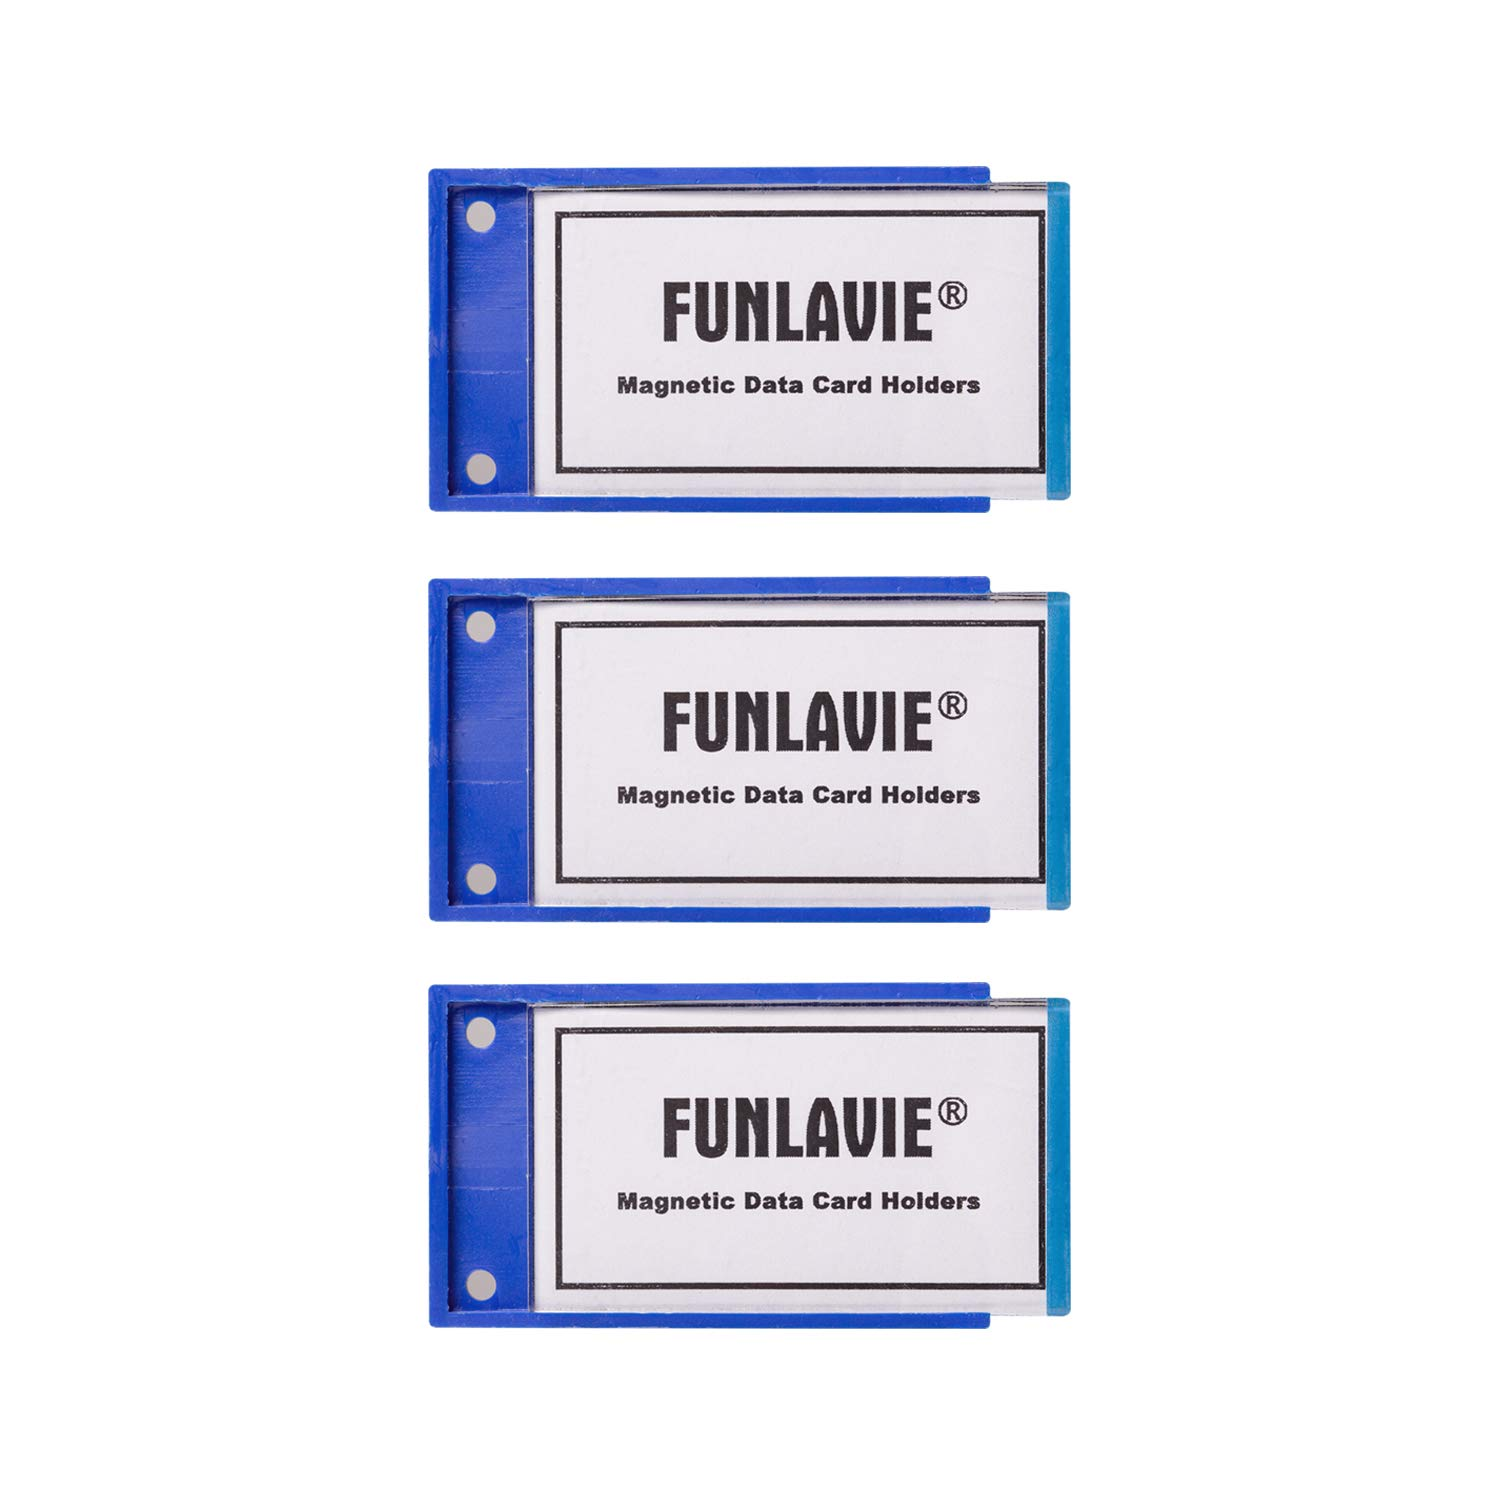 12Pcs Magnetic Data Card Holders Replaceable 2.8 x 1.7 Inches, Blue - FUNLAVIE